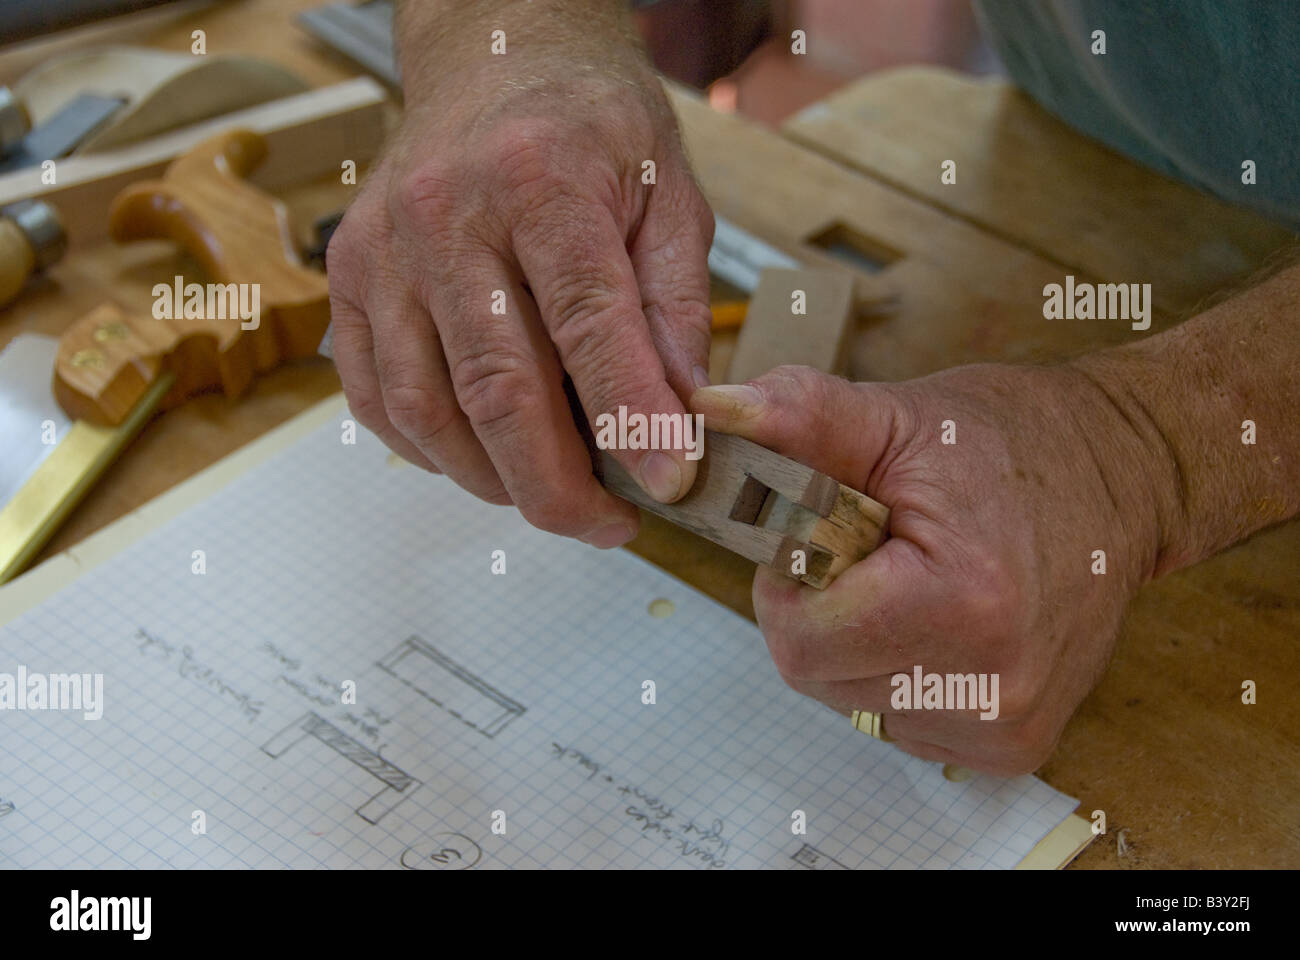 carpenter man working with wood with close up of hands - Stock Image